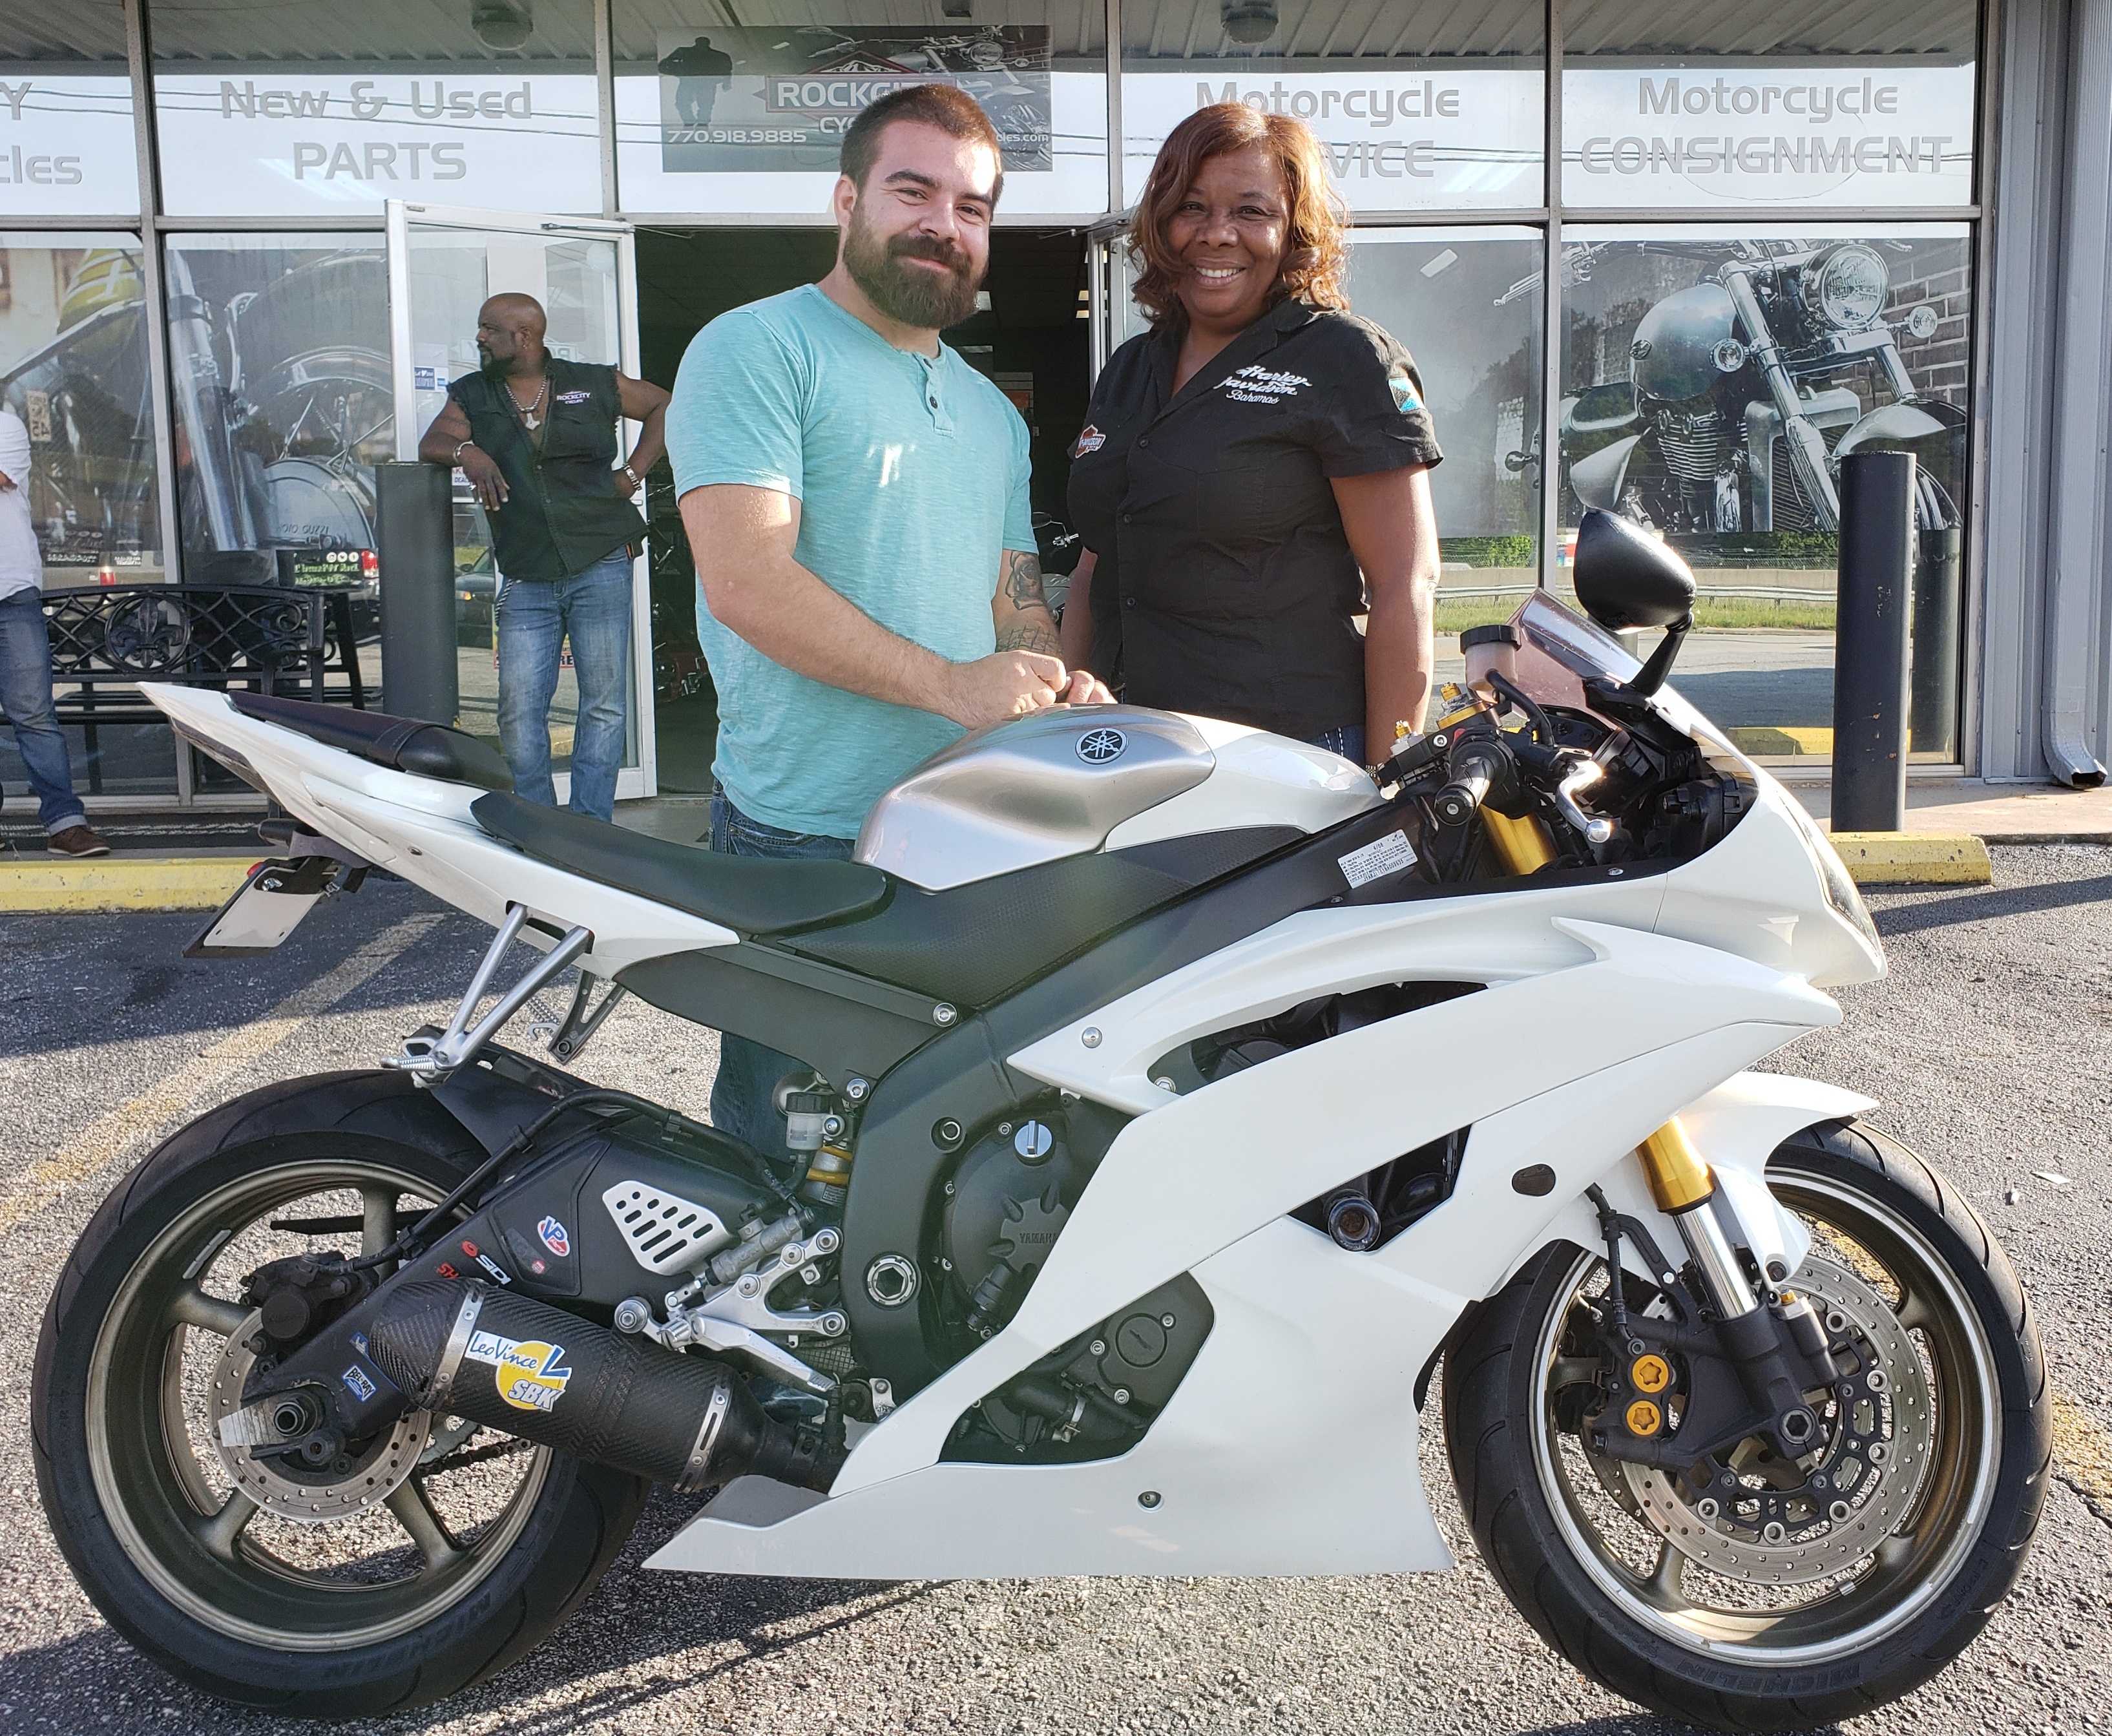 Vasilly K. with his 2008 Yamaha YZF R6